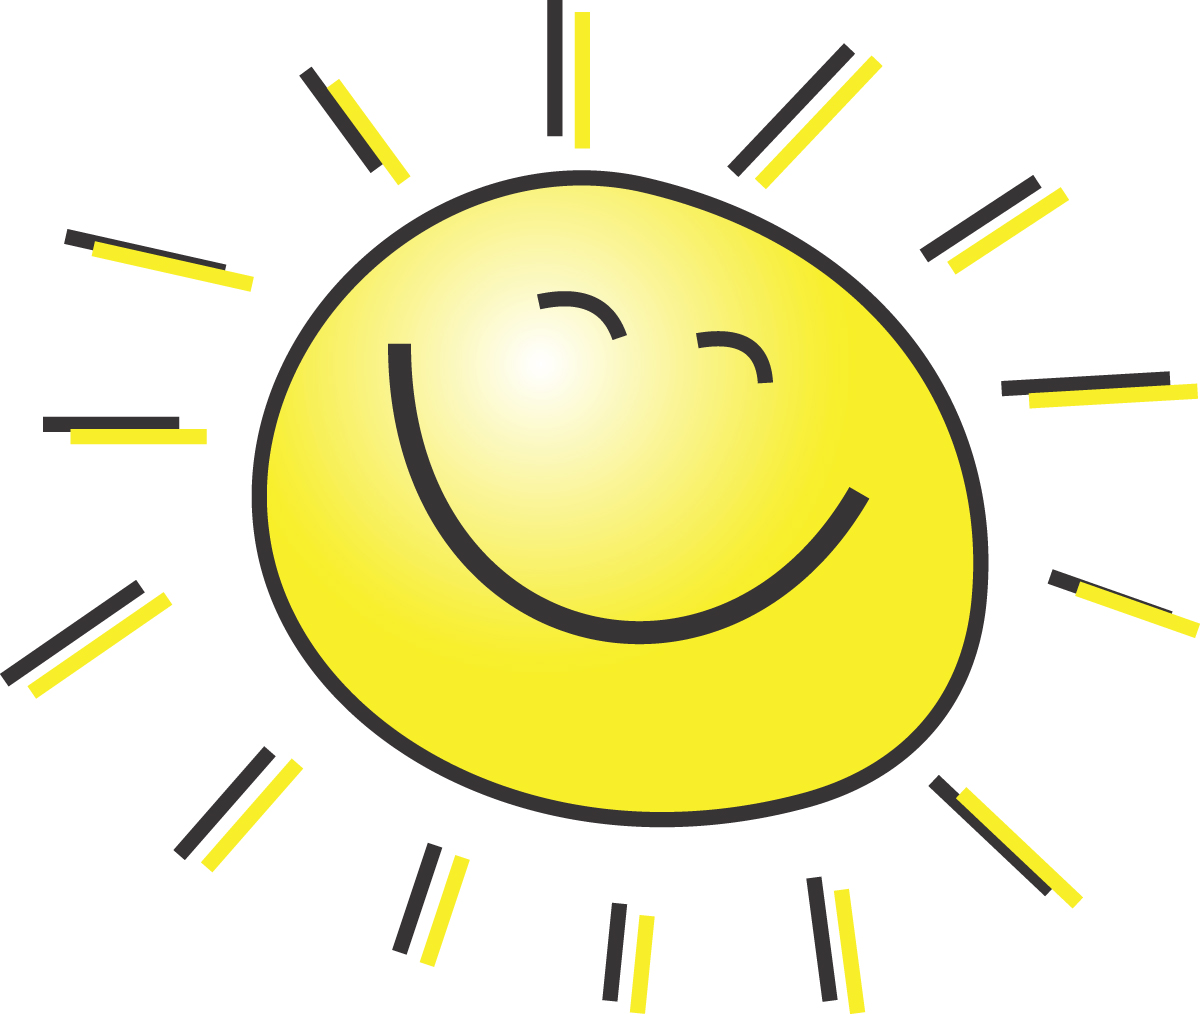 Sun or shine clipart vector download Free Sunshine Image, Download Free Clip Art, Free Clip Art ... vector download